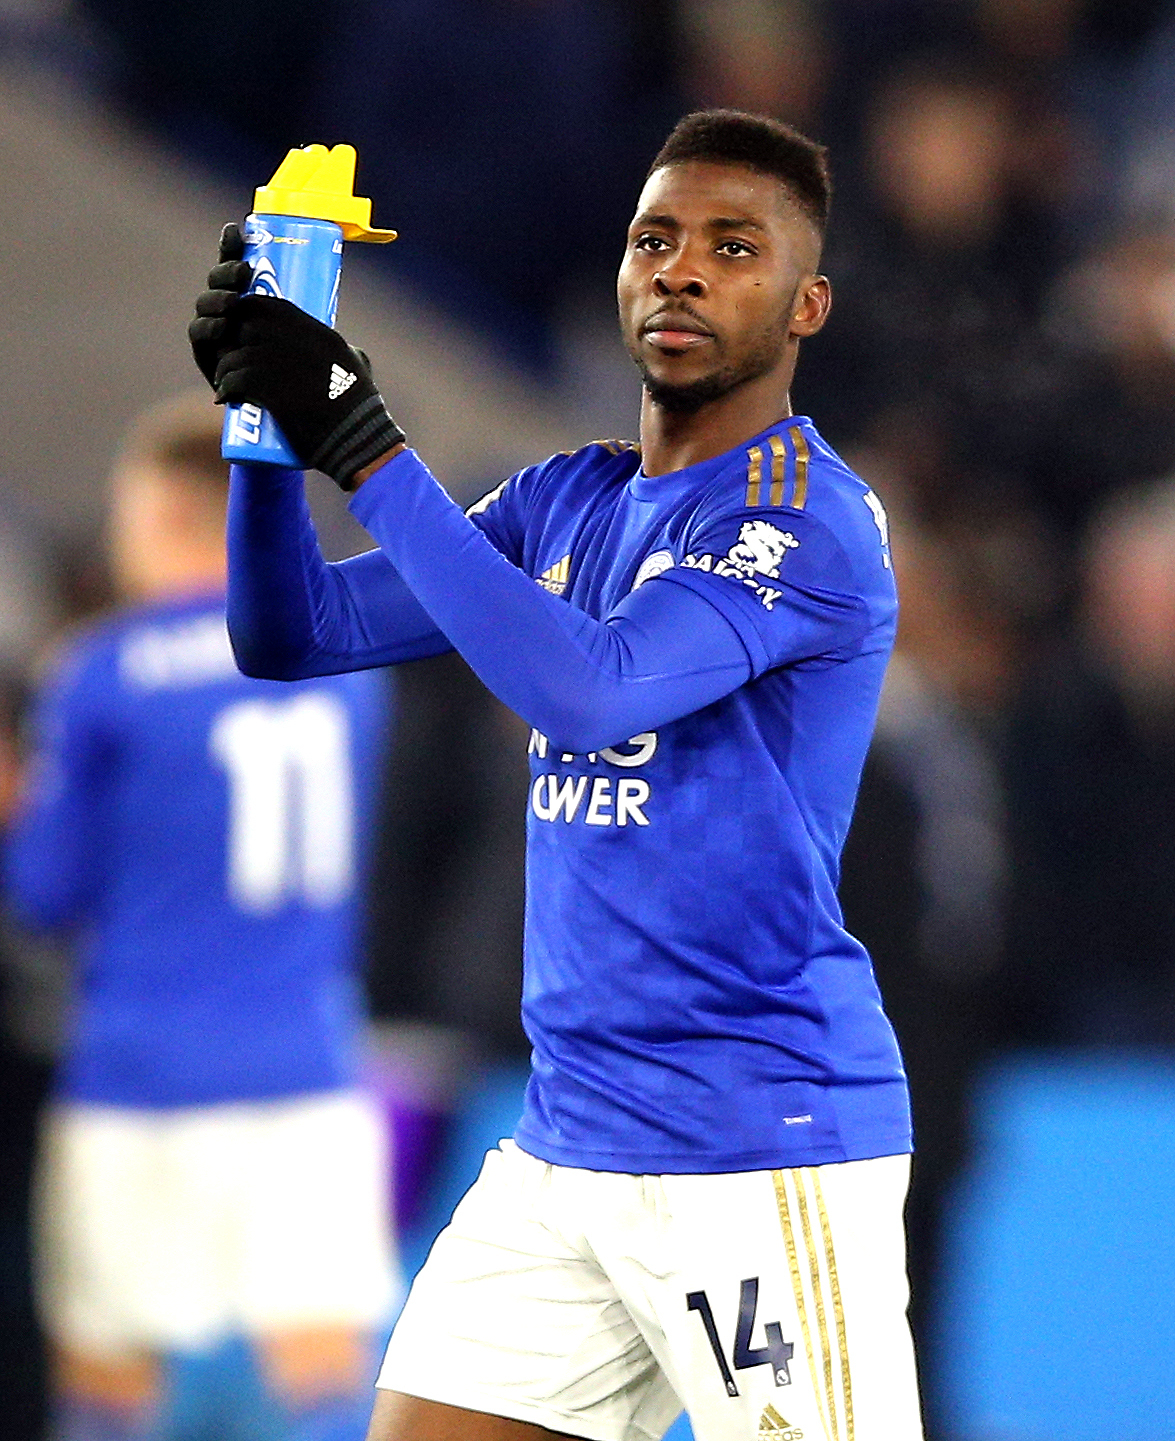 Heskey: Iheanacho Not Good Enough To Replace Vardy At Leicester City